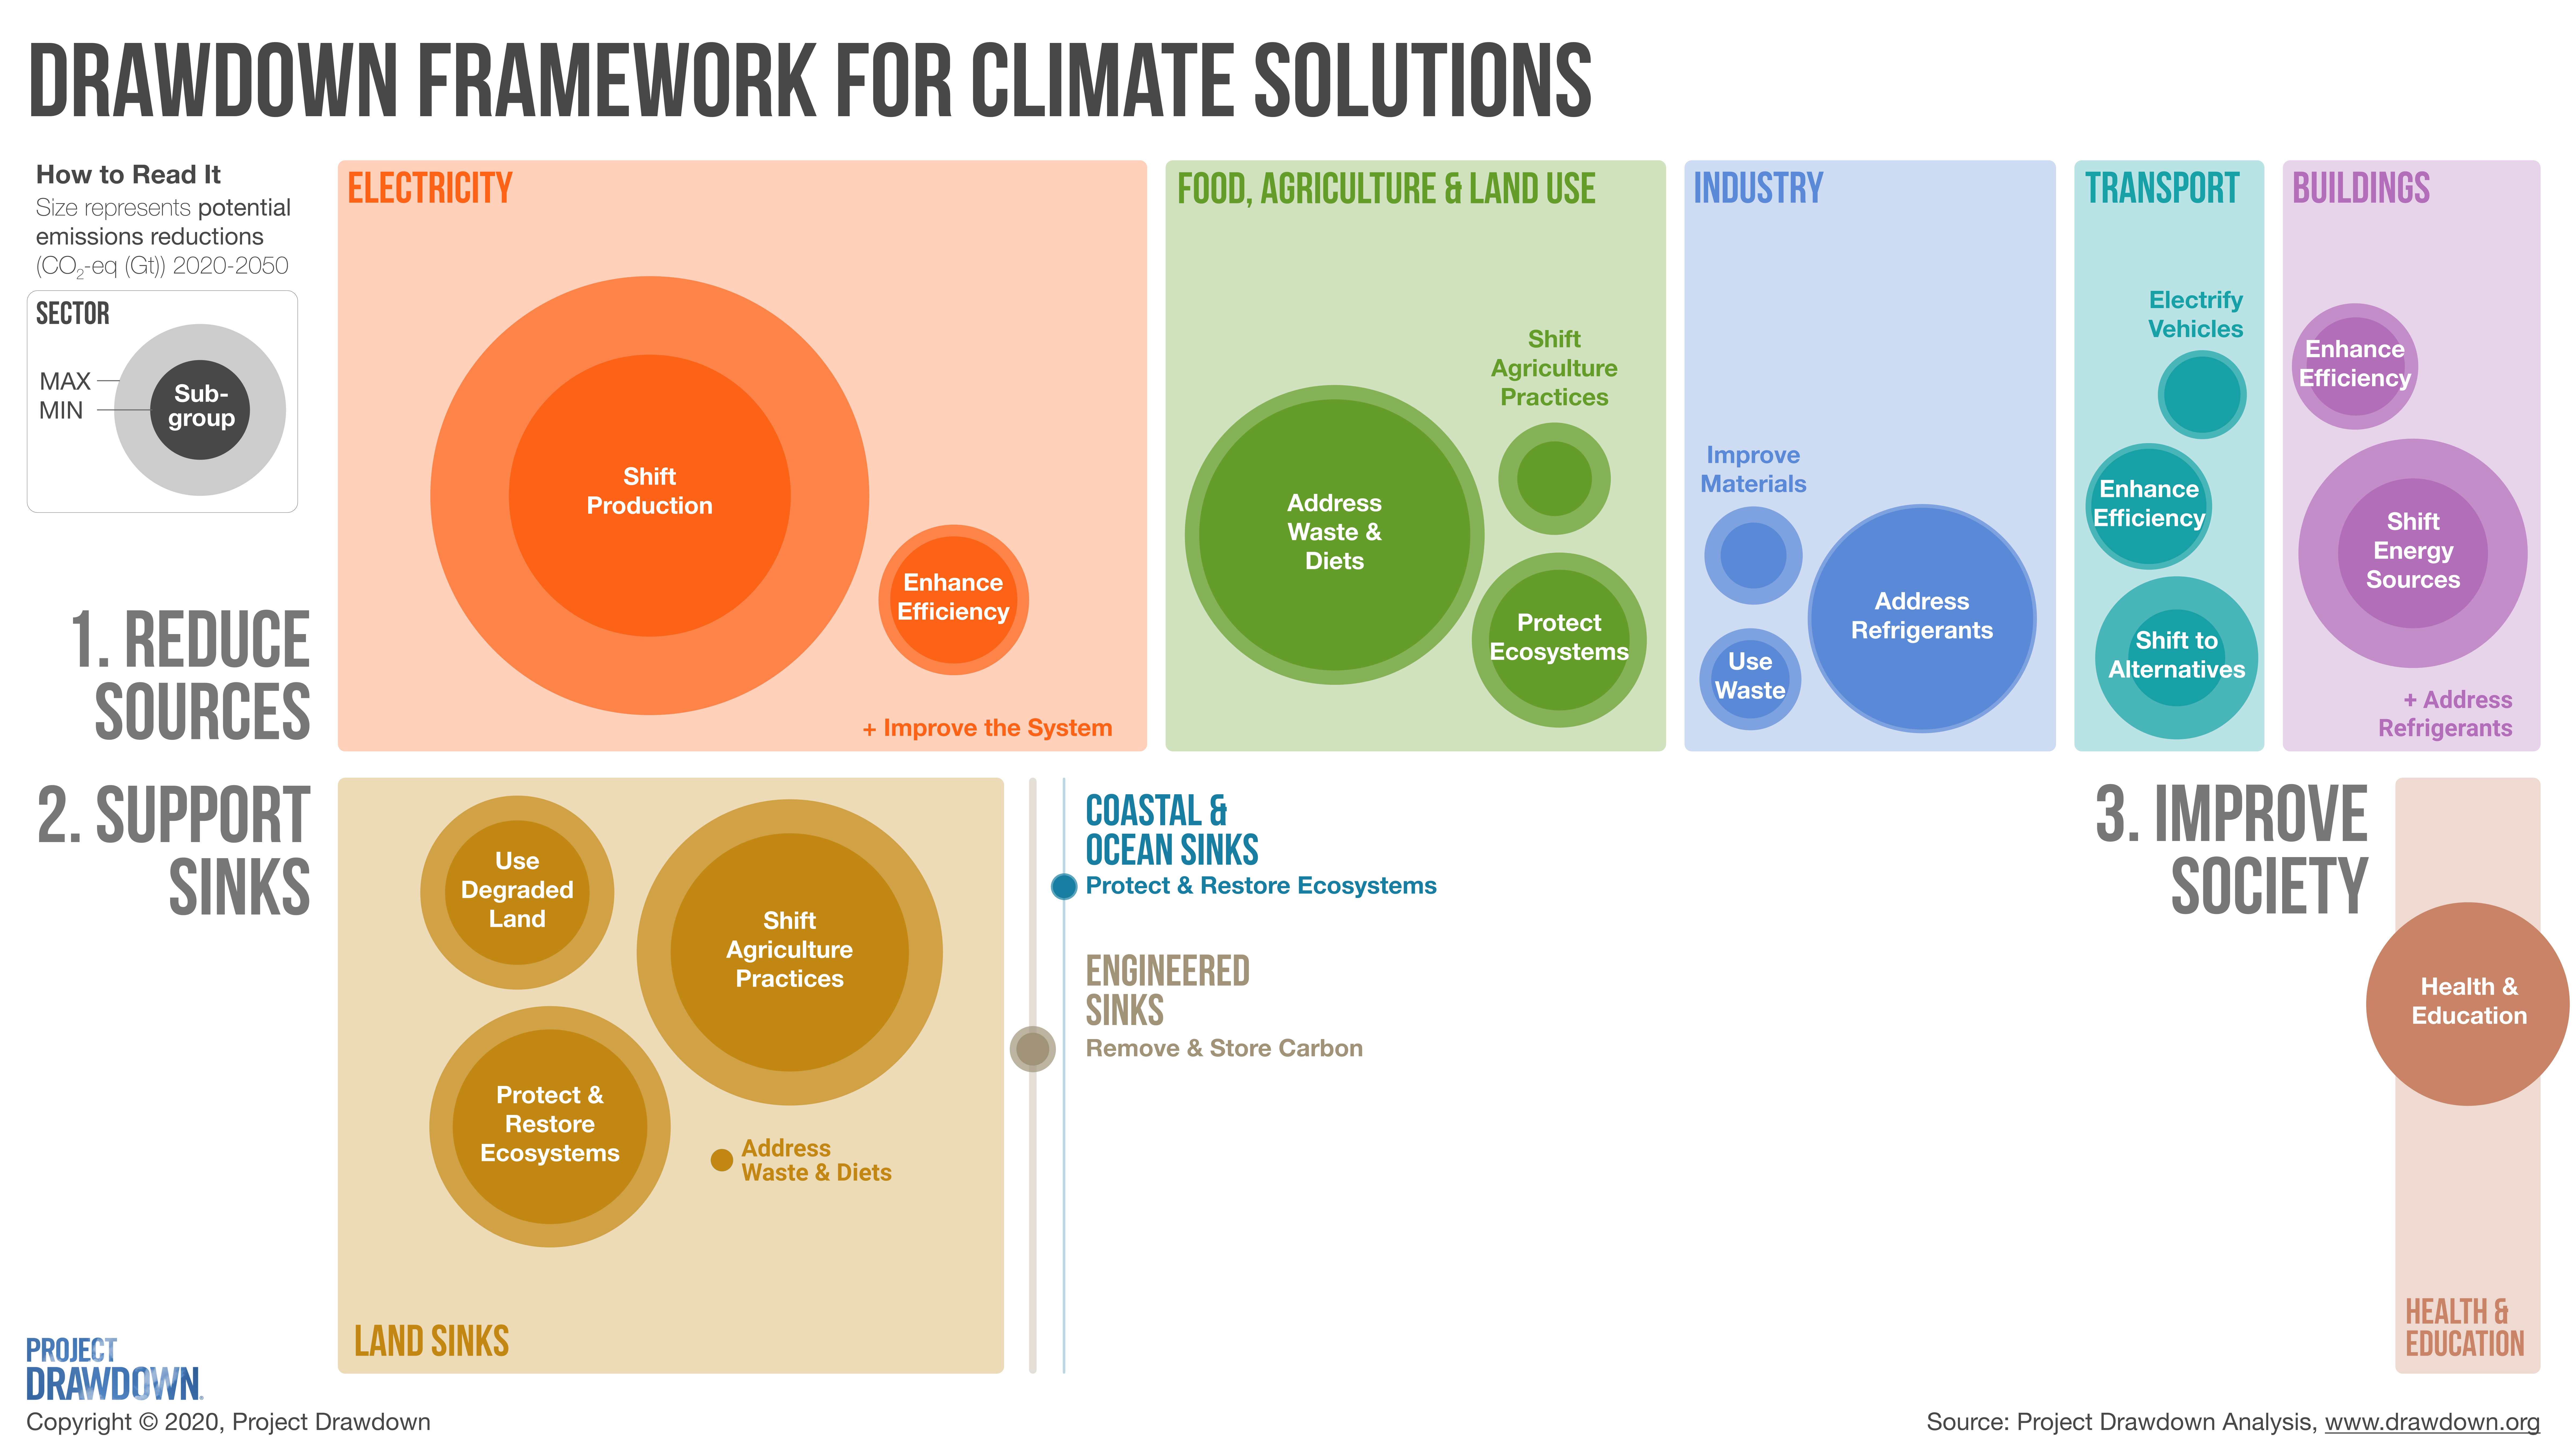 Diagram showing potential emissions reductions by sector